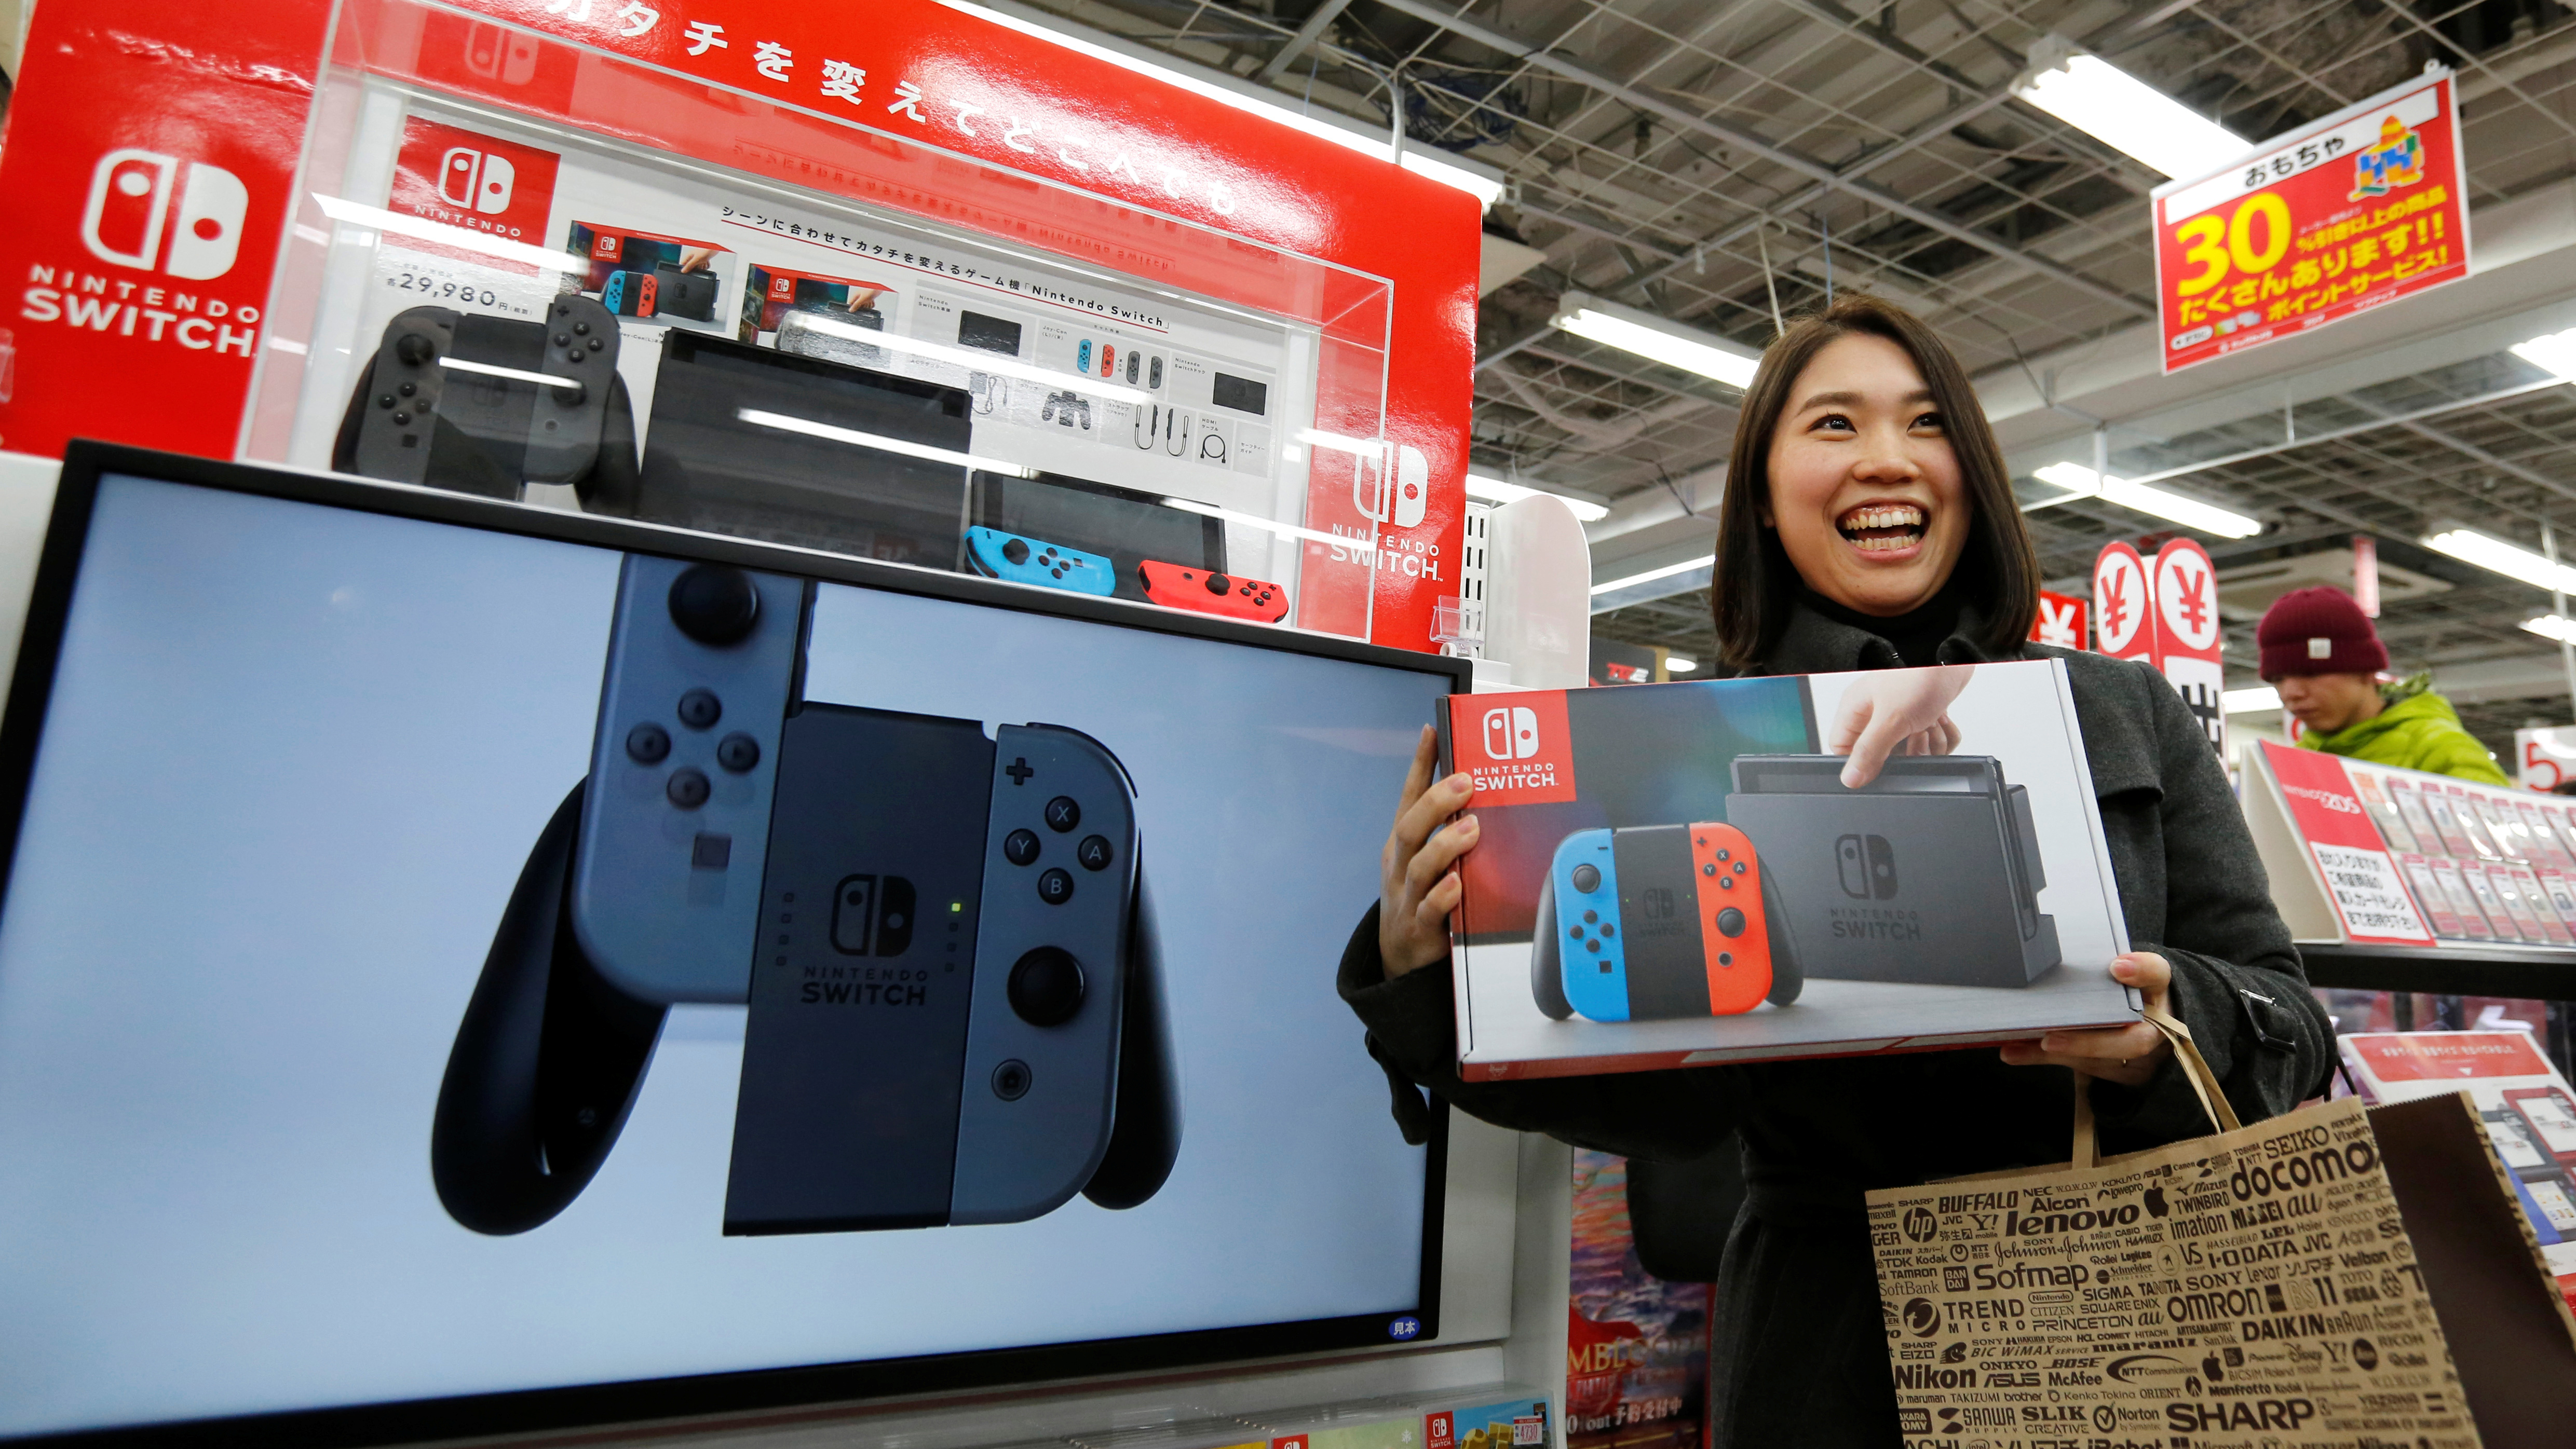 Nao Imoto smiles as she poses with her Nintendo Switch game console after buying it at an electronics store in Tokyo, Japan March 3, 2017.  REUTERS/Toru Hanai - RC1A26499830